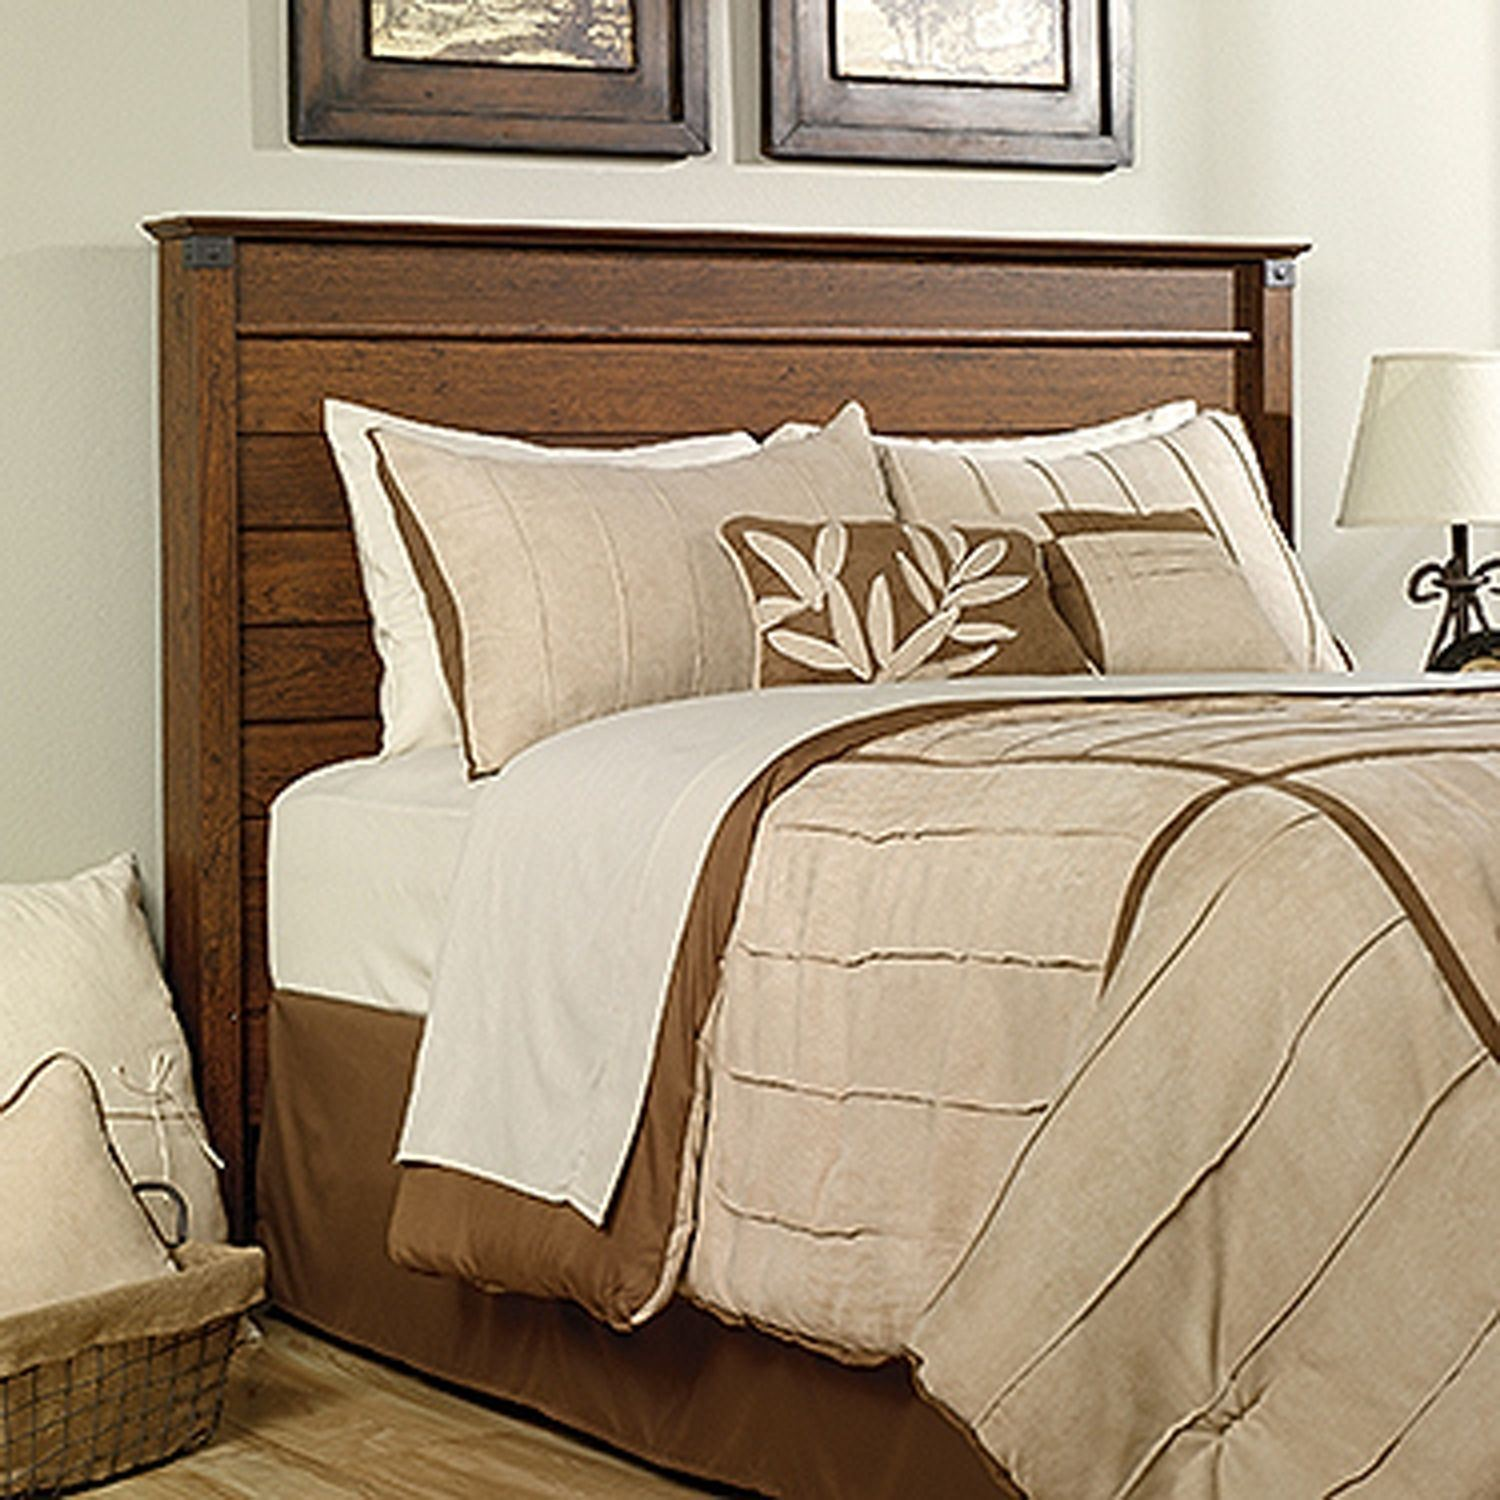 Picture of Carson Forge Full/queen Panel Headboard